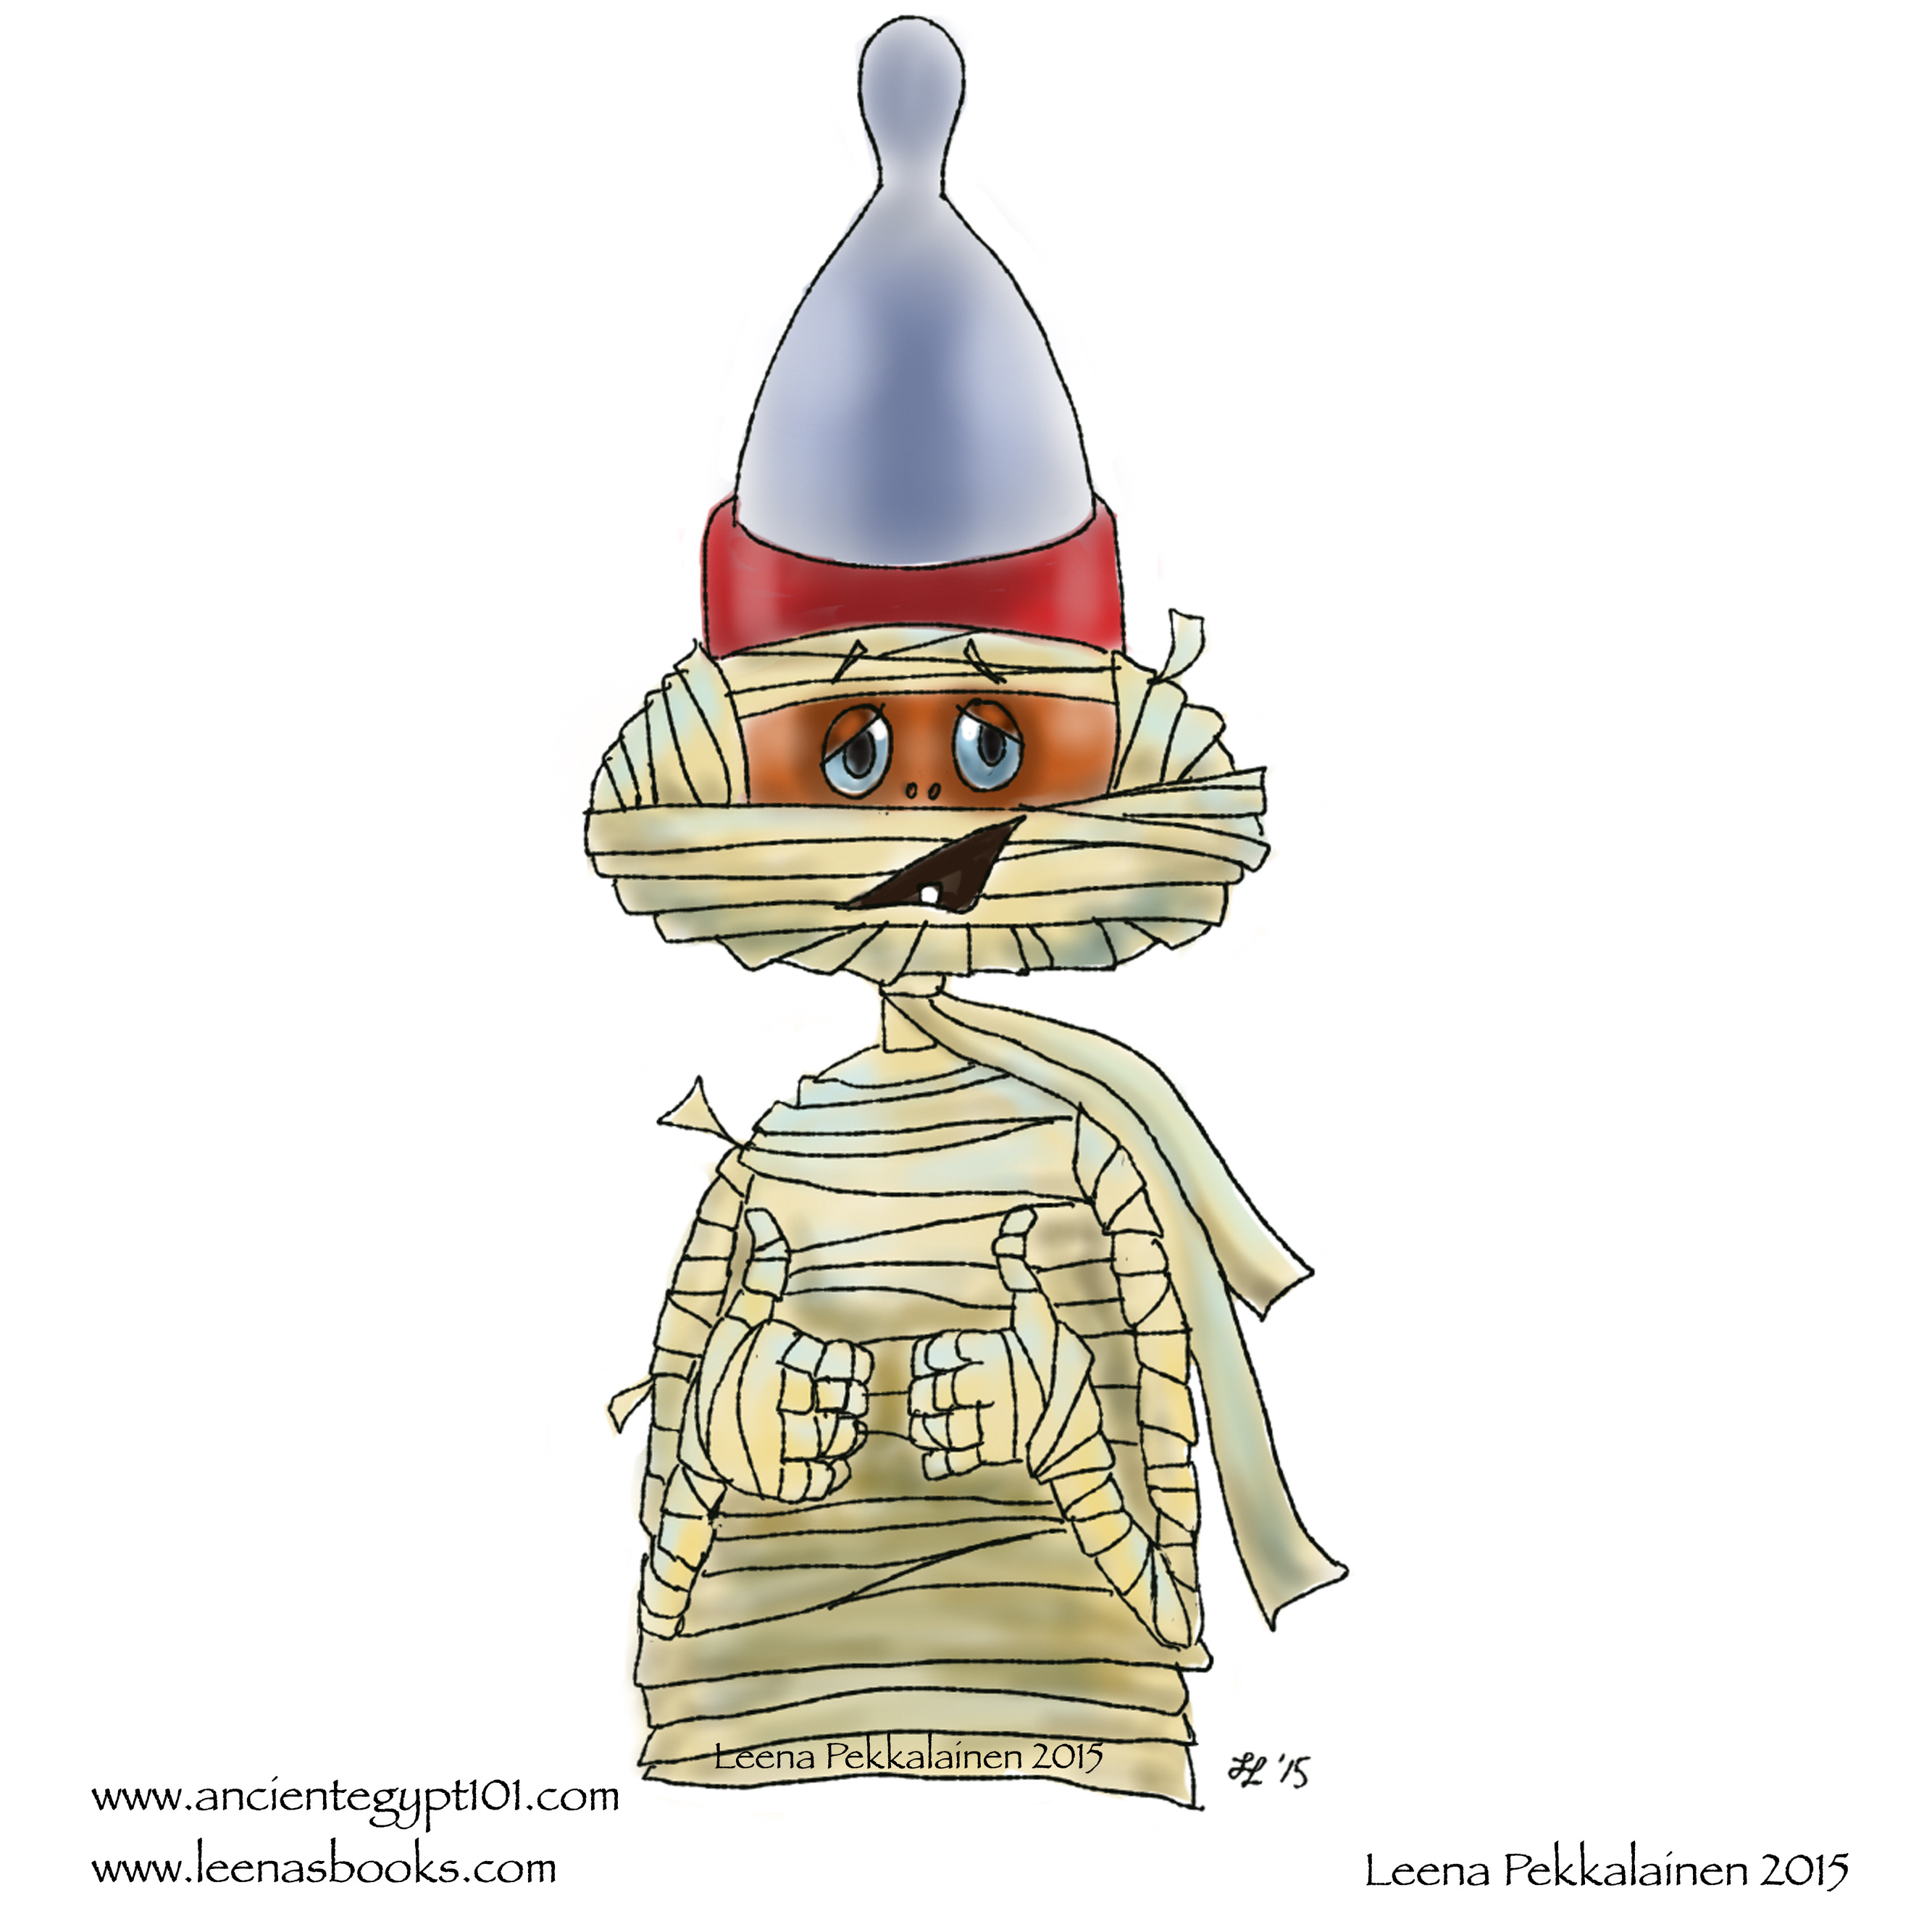 Mr Mummific's travel blog - ancient Egyptian mummy's adventures in today's world